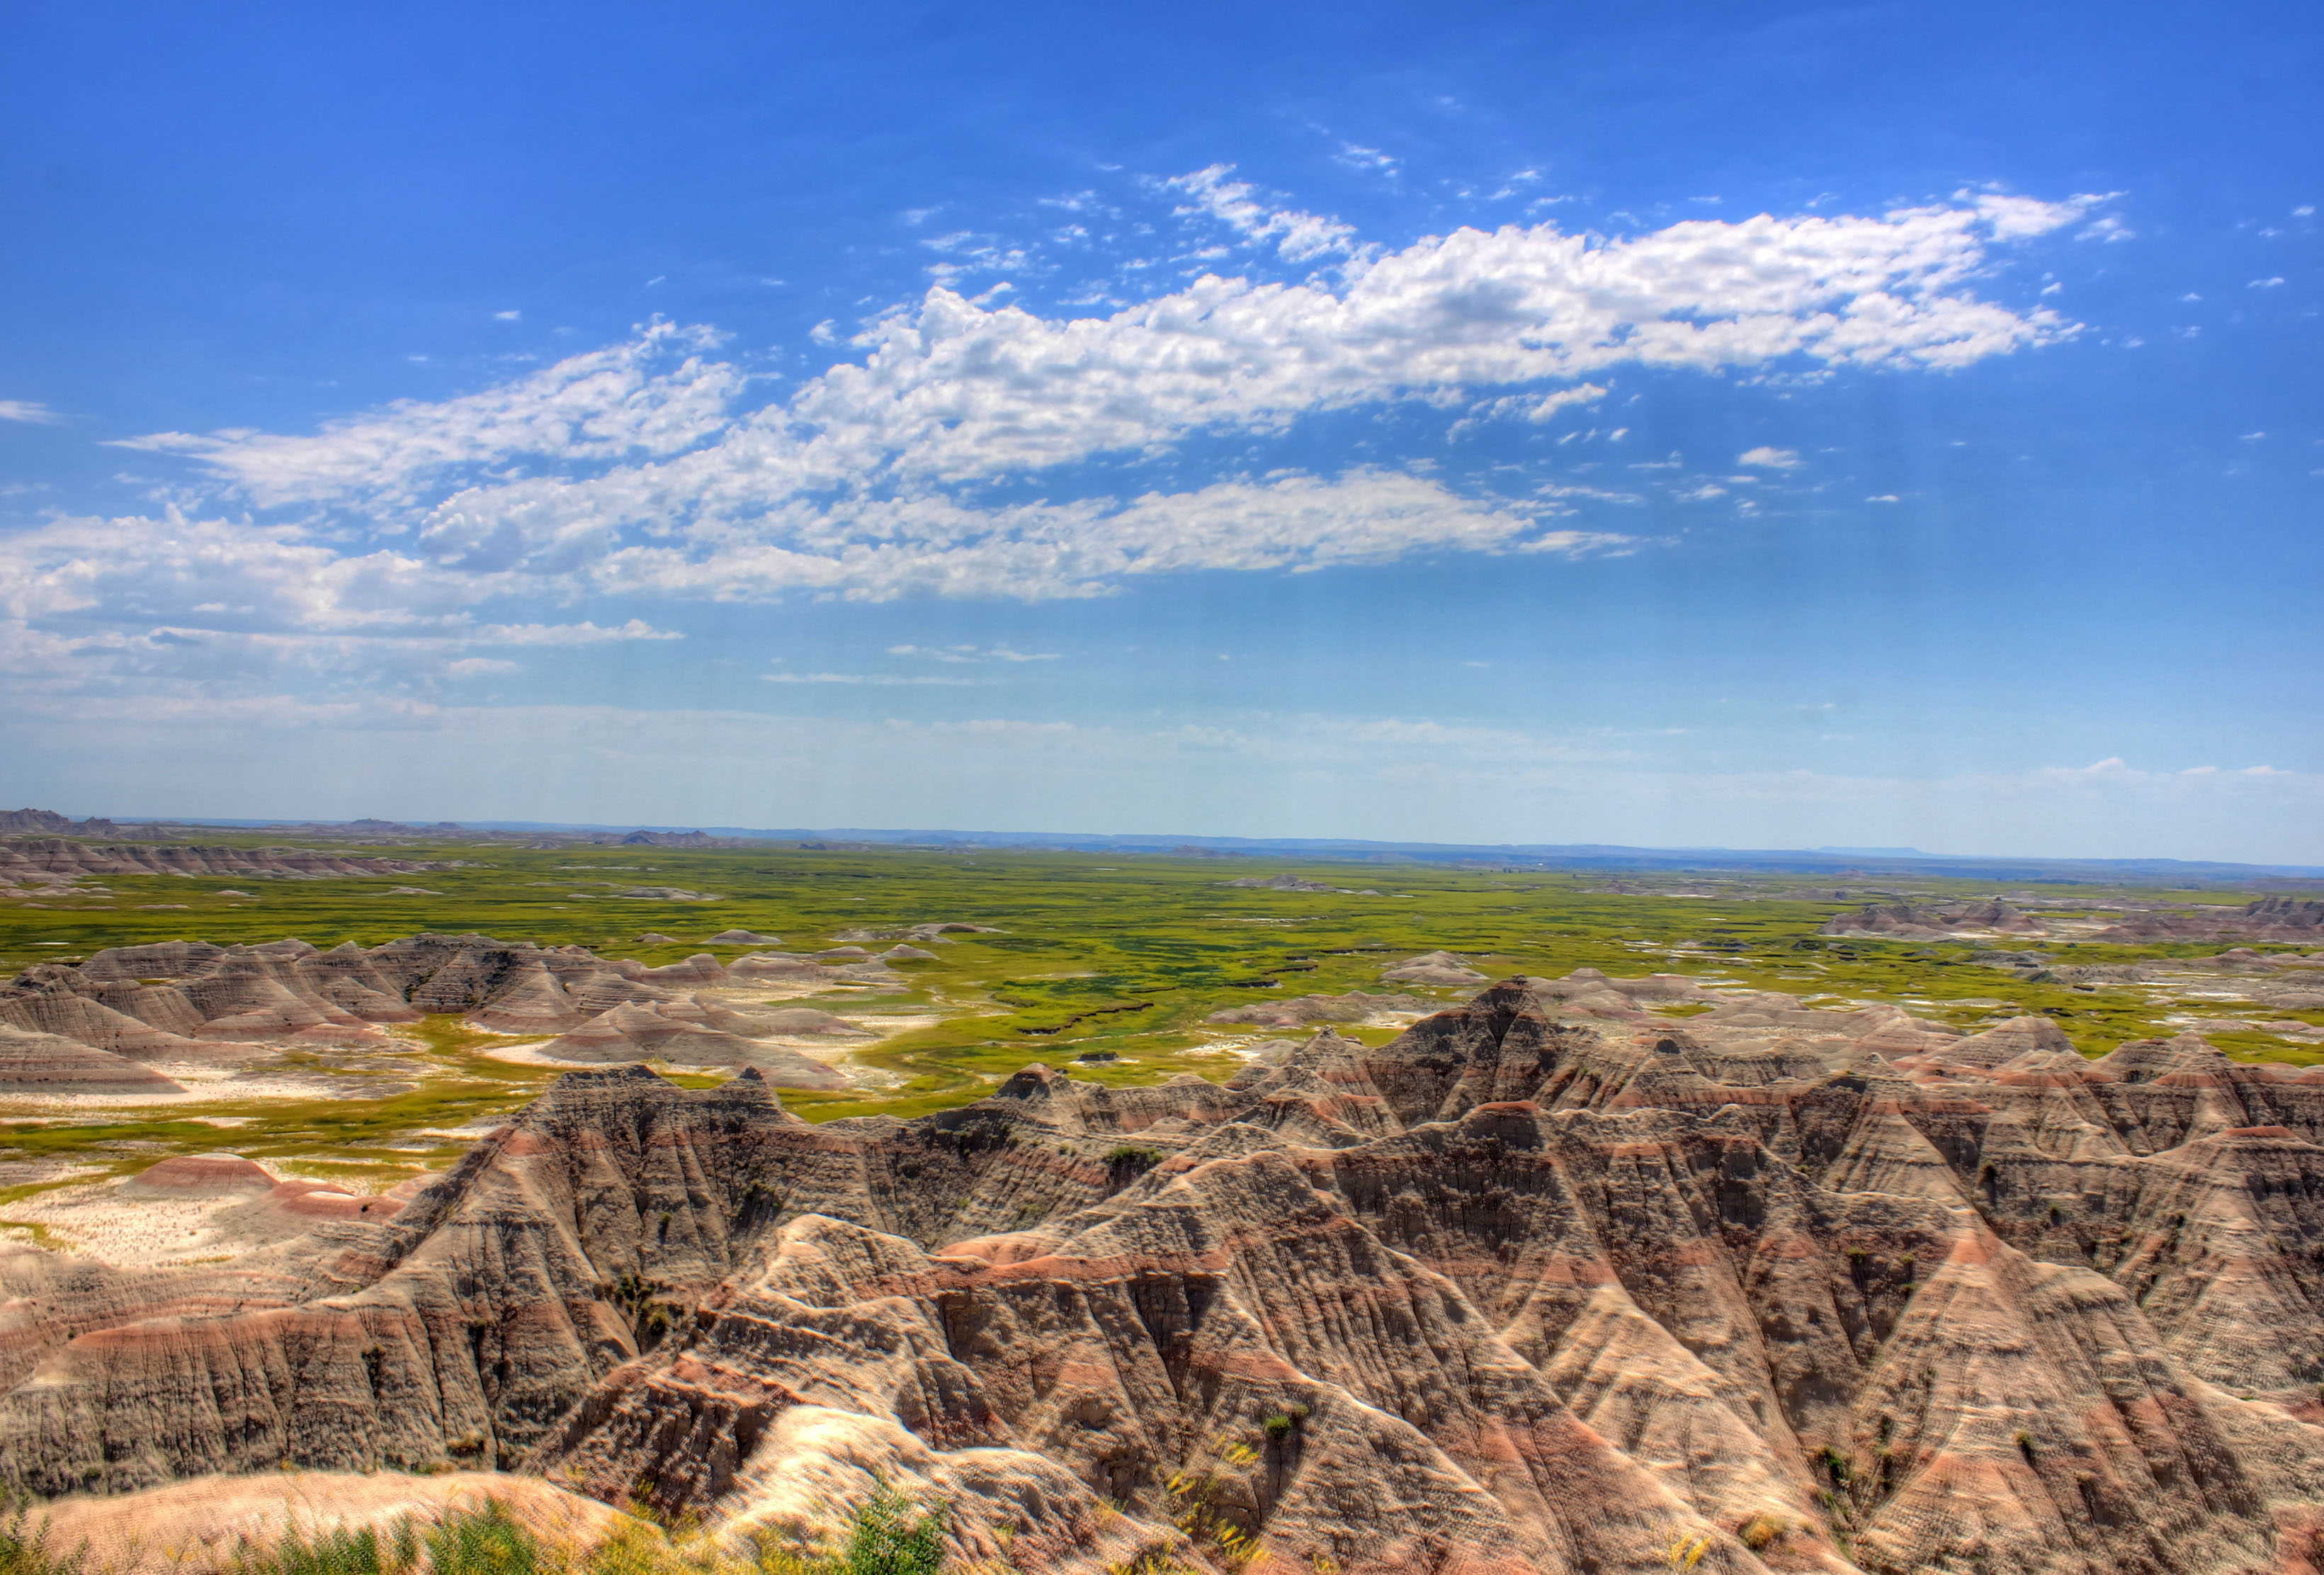 Hills and Buttes of the Badlands